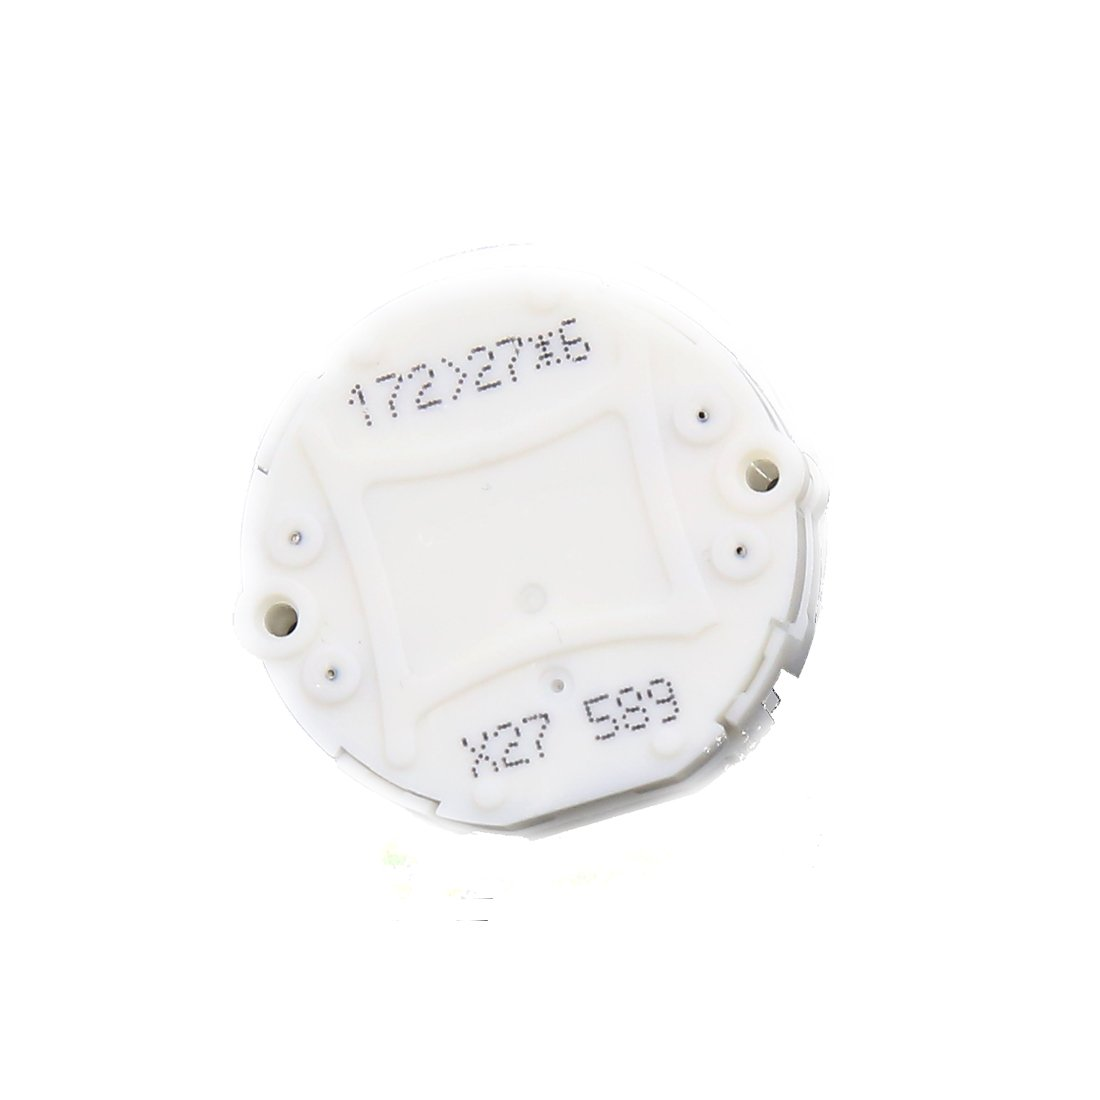 Amazon.com: uxcell a16082300ux0653 X27.589 XC5.589 Speedometer Gauge Stepper Motor for 05-08 Ford Mustang: Automotive